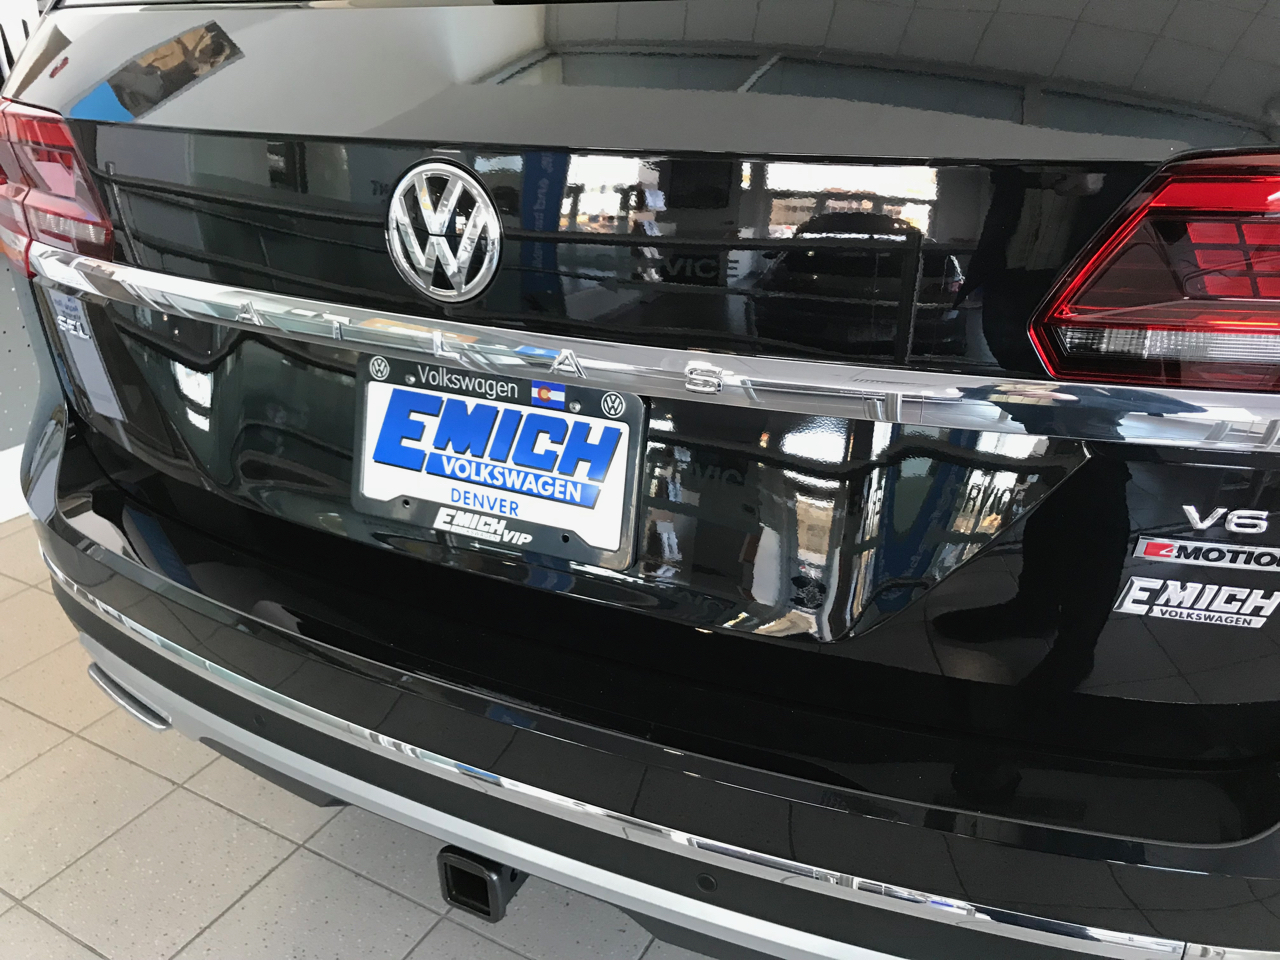 VW on the showroom floor of Emich VW in Denver